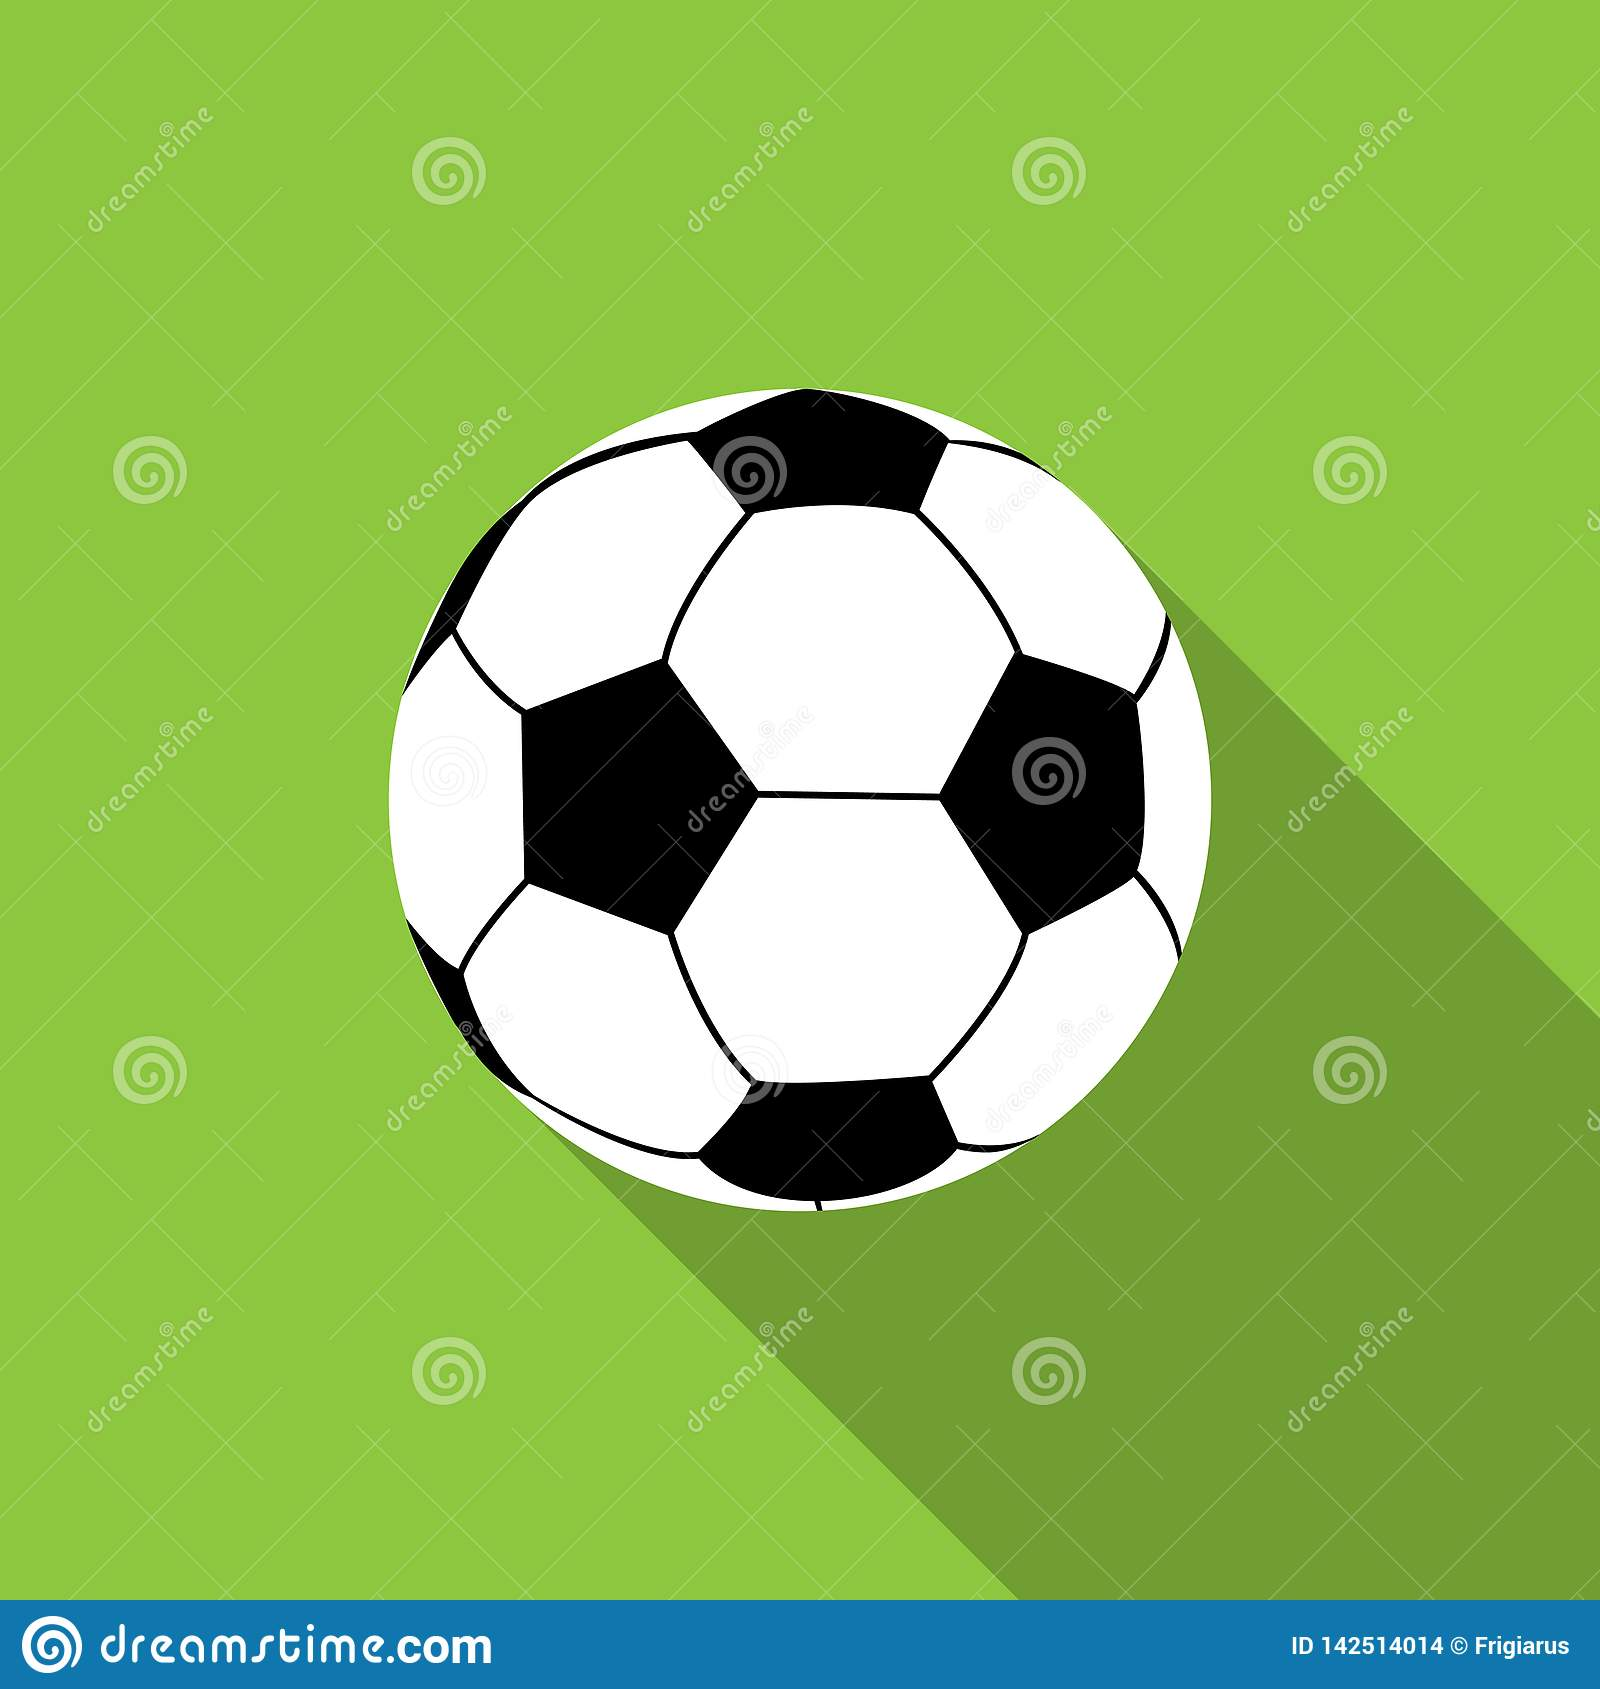 Football ball on green background.